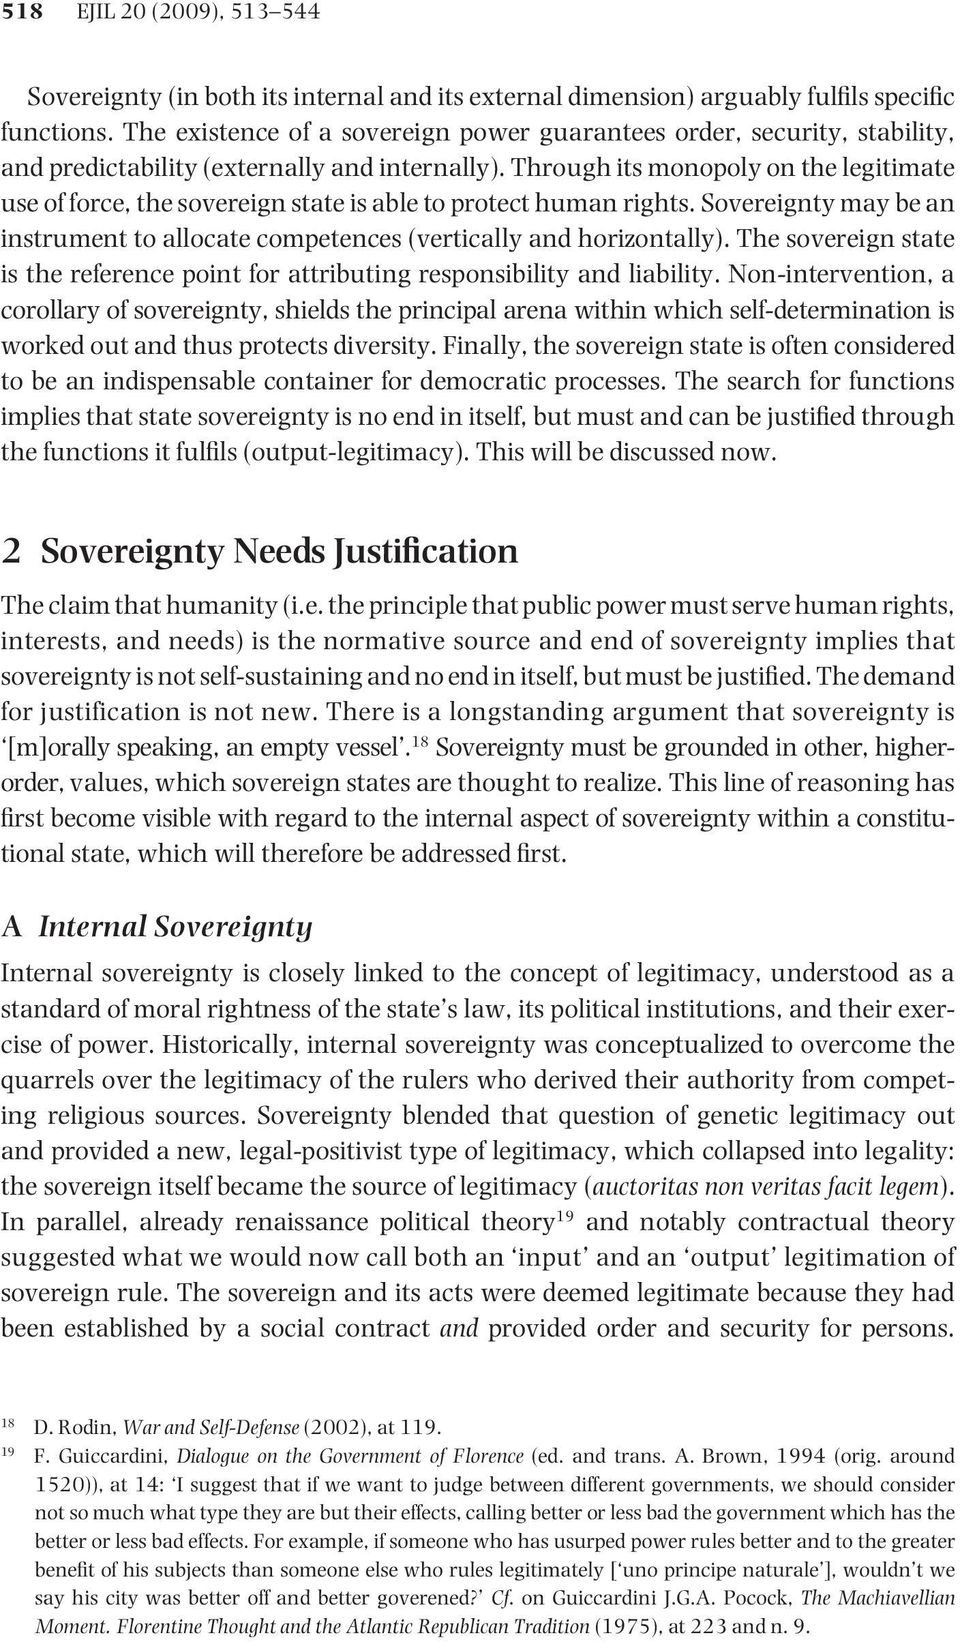 Through its monopoly on the legitimate use of force, the sovereign state is able to protect human rights. Sovereignty may be an instrument to allocate competences (vertically and horizontally).